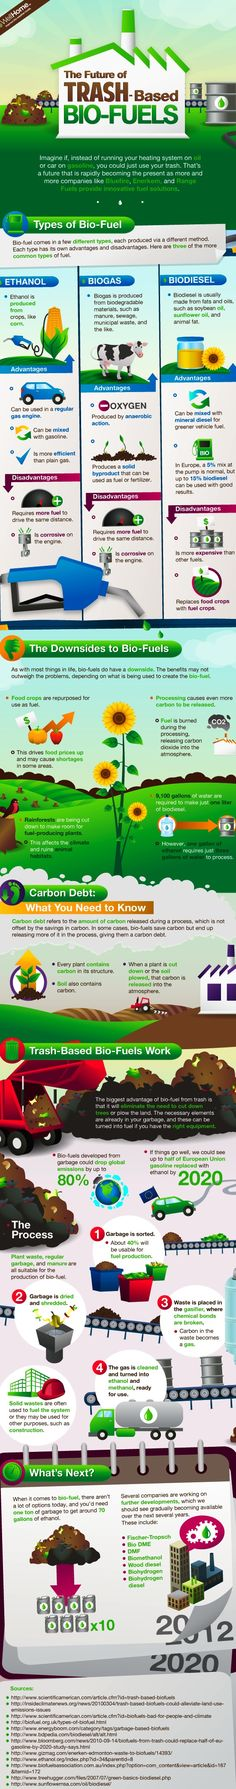 Trash based biofuels infographics! EcoPush (Gibraltar) for Sustainable, Socially Responsible Markets as well as Clean Energy, Timber, Forestry and Biofuel Bonds - http://ecopush.com/biofuels